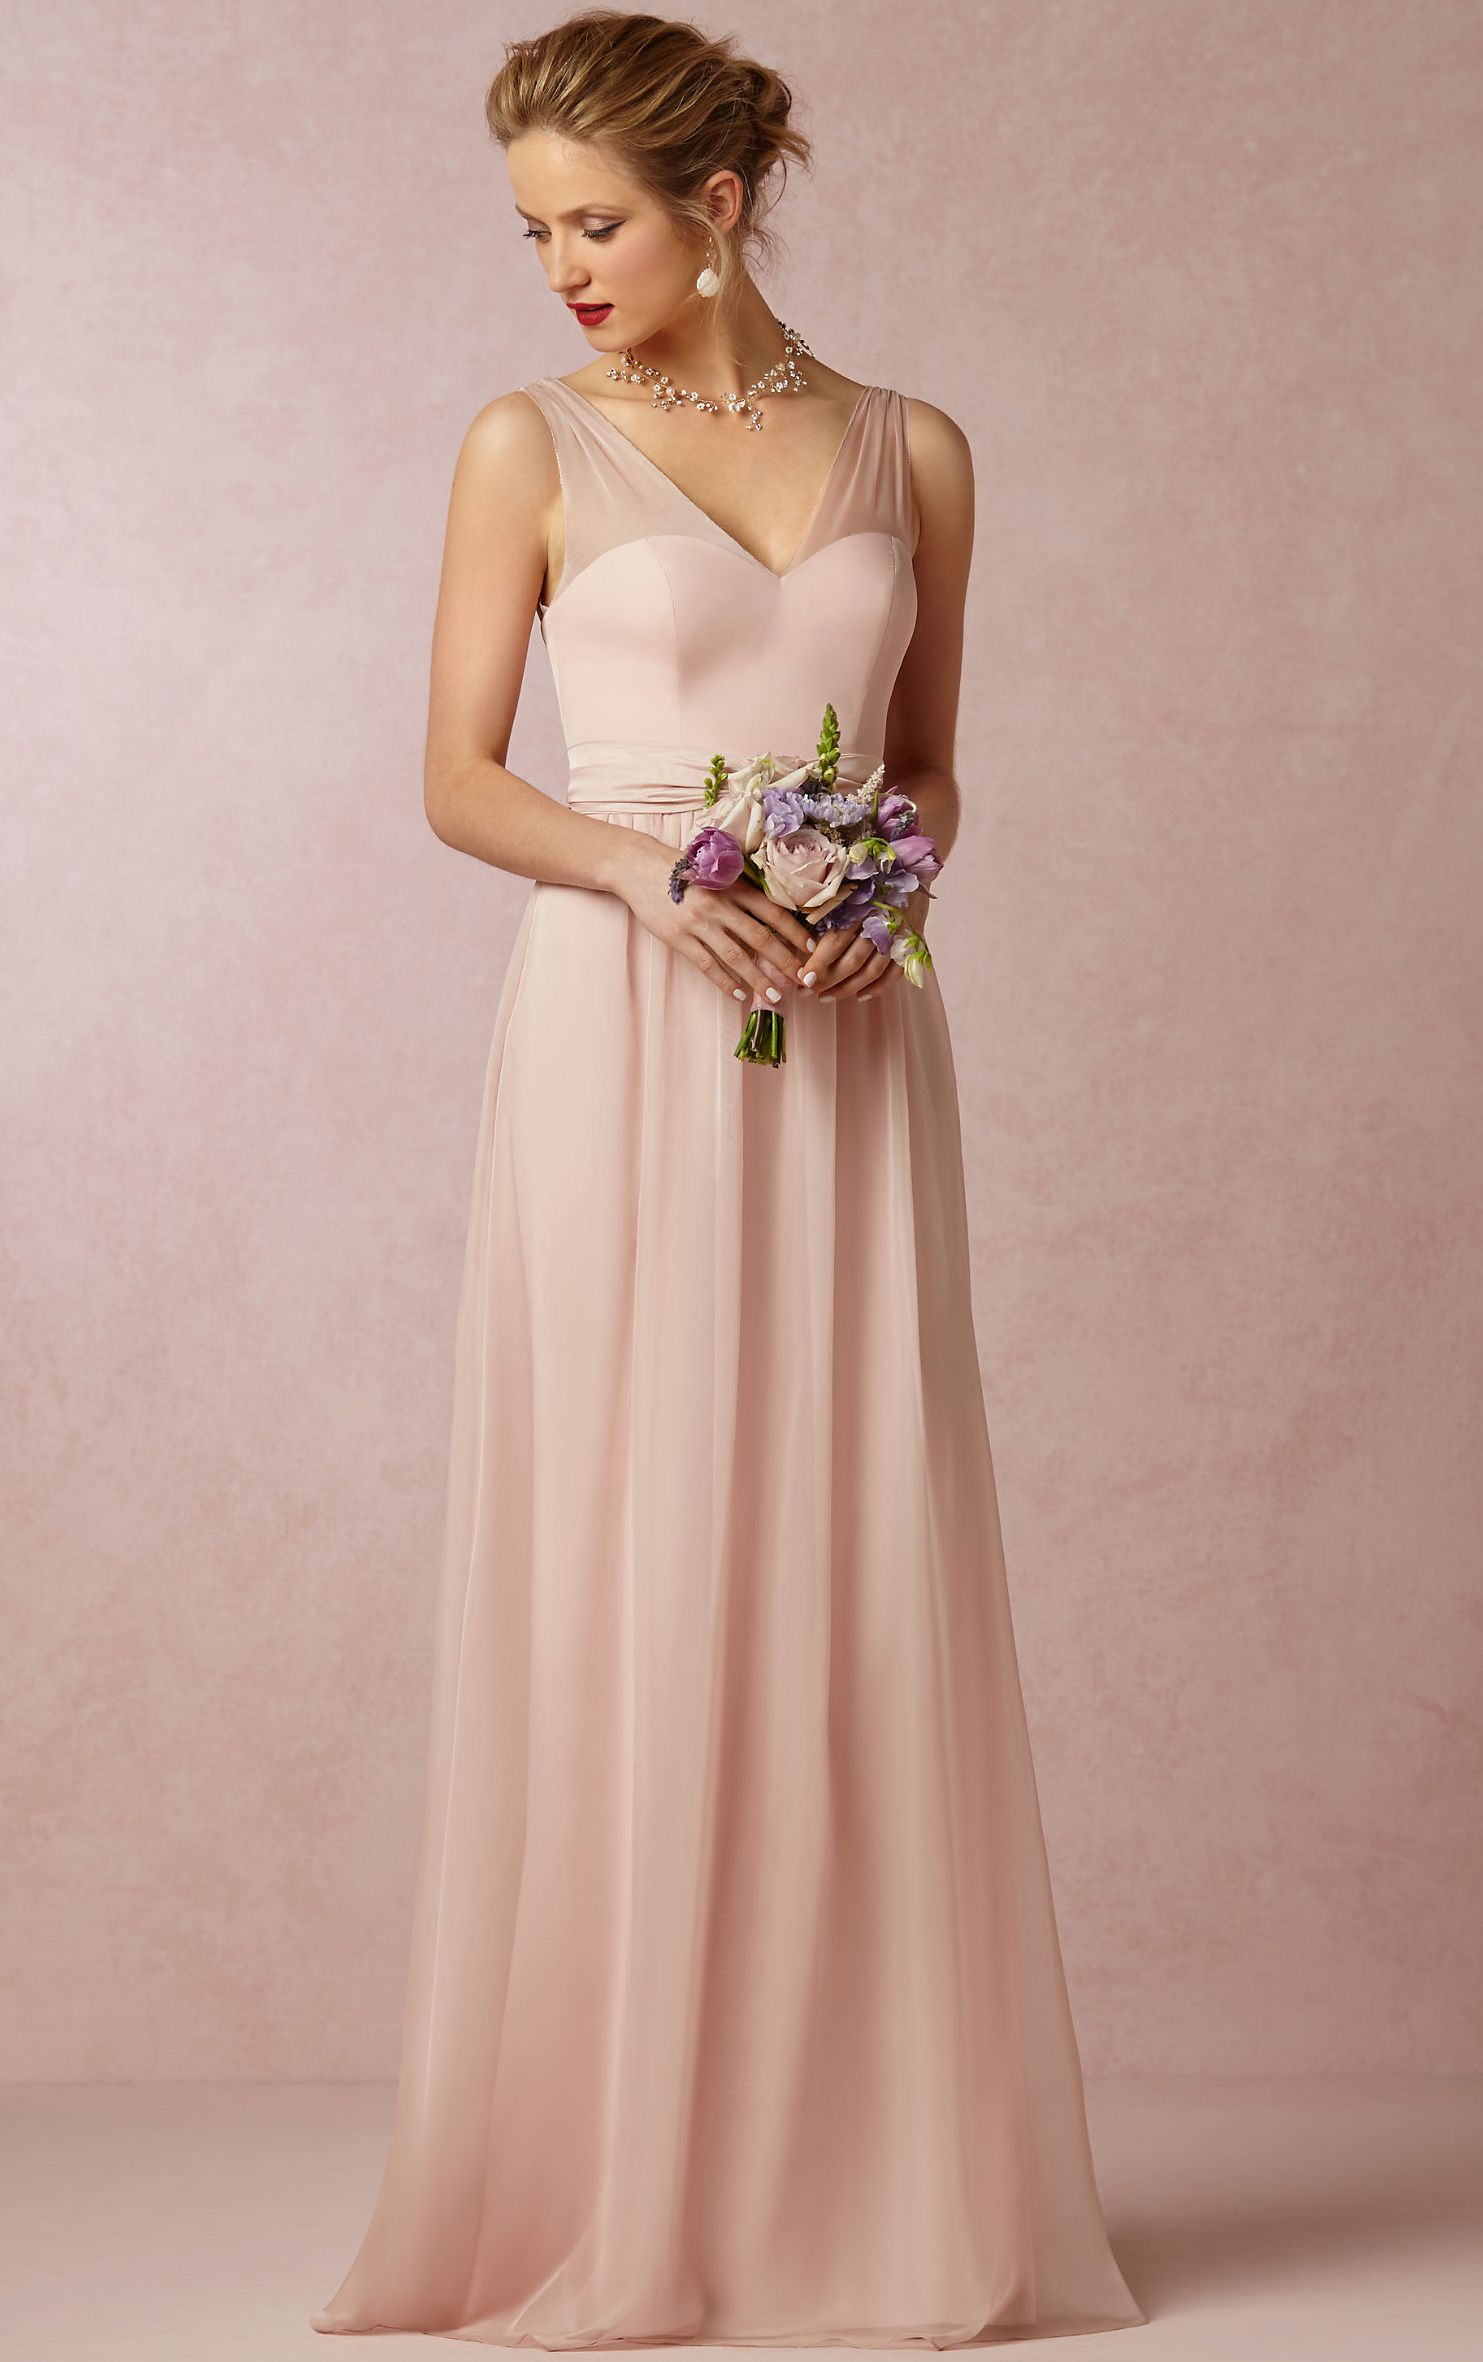 V Neck A Line Sleeveless Natural Floor Length Bridesmaid